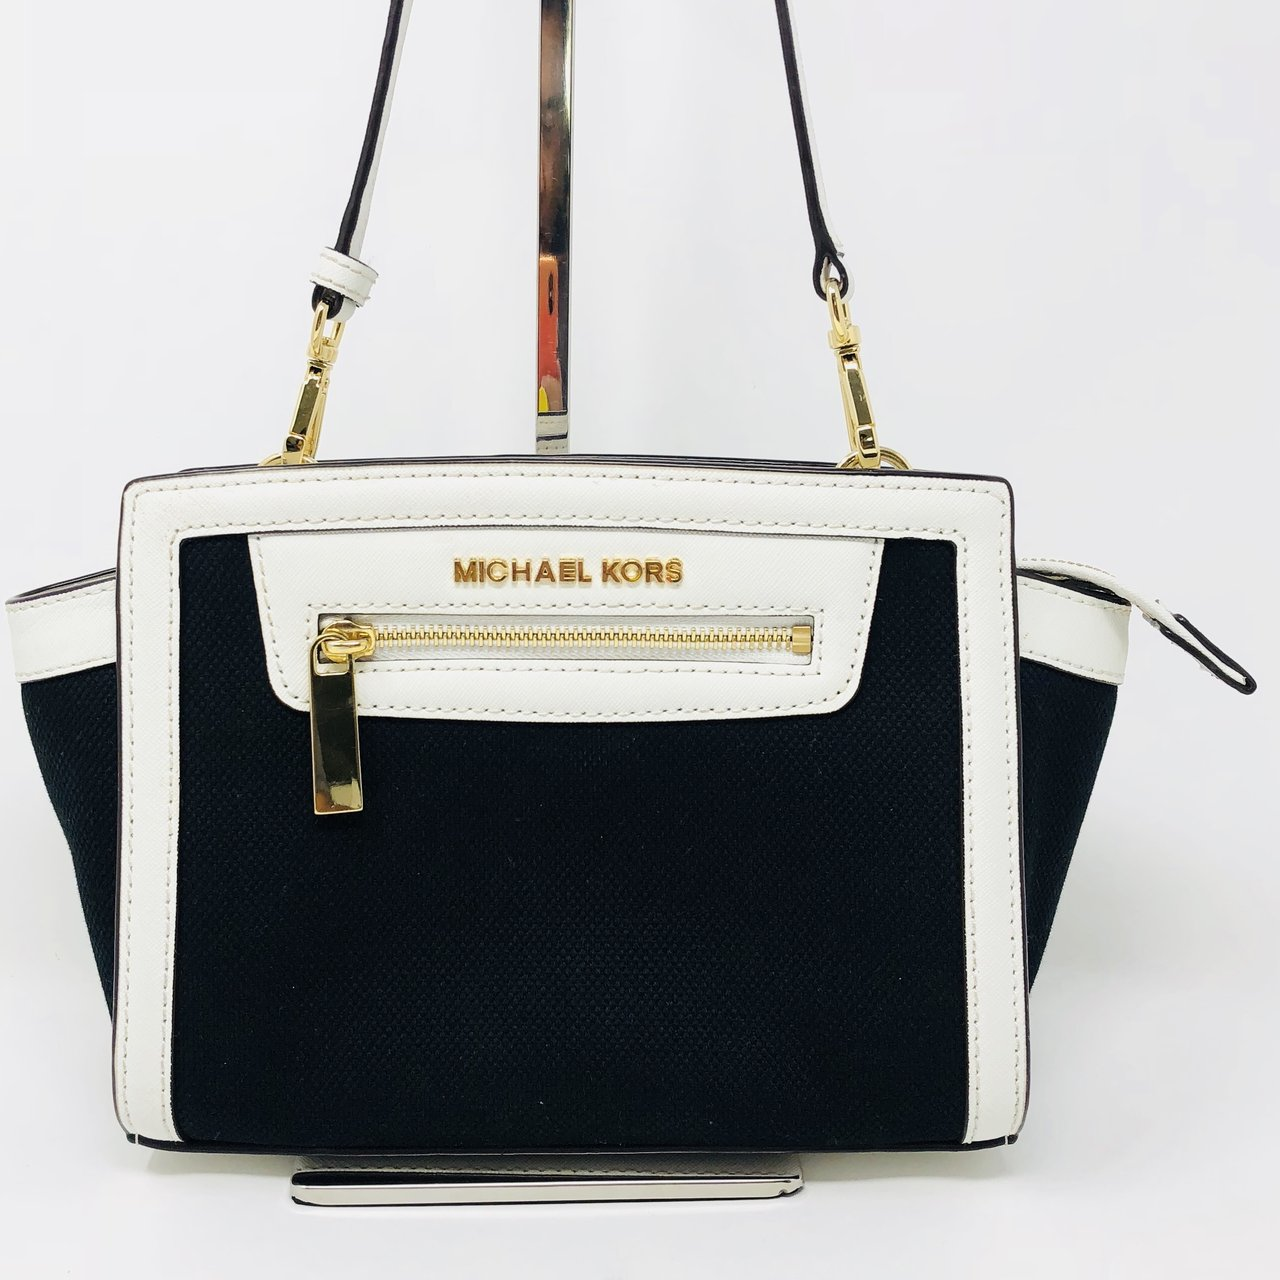 52cc78d8feb7 @itshadrian. 9 months ago. Chino Hills, United States. Gorgeous black  canvas and white saffiano leather Michael Kors small Selma Crossbody Bag  with gold ...